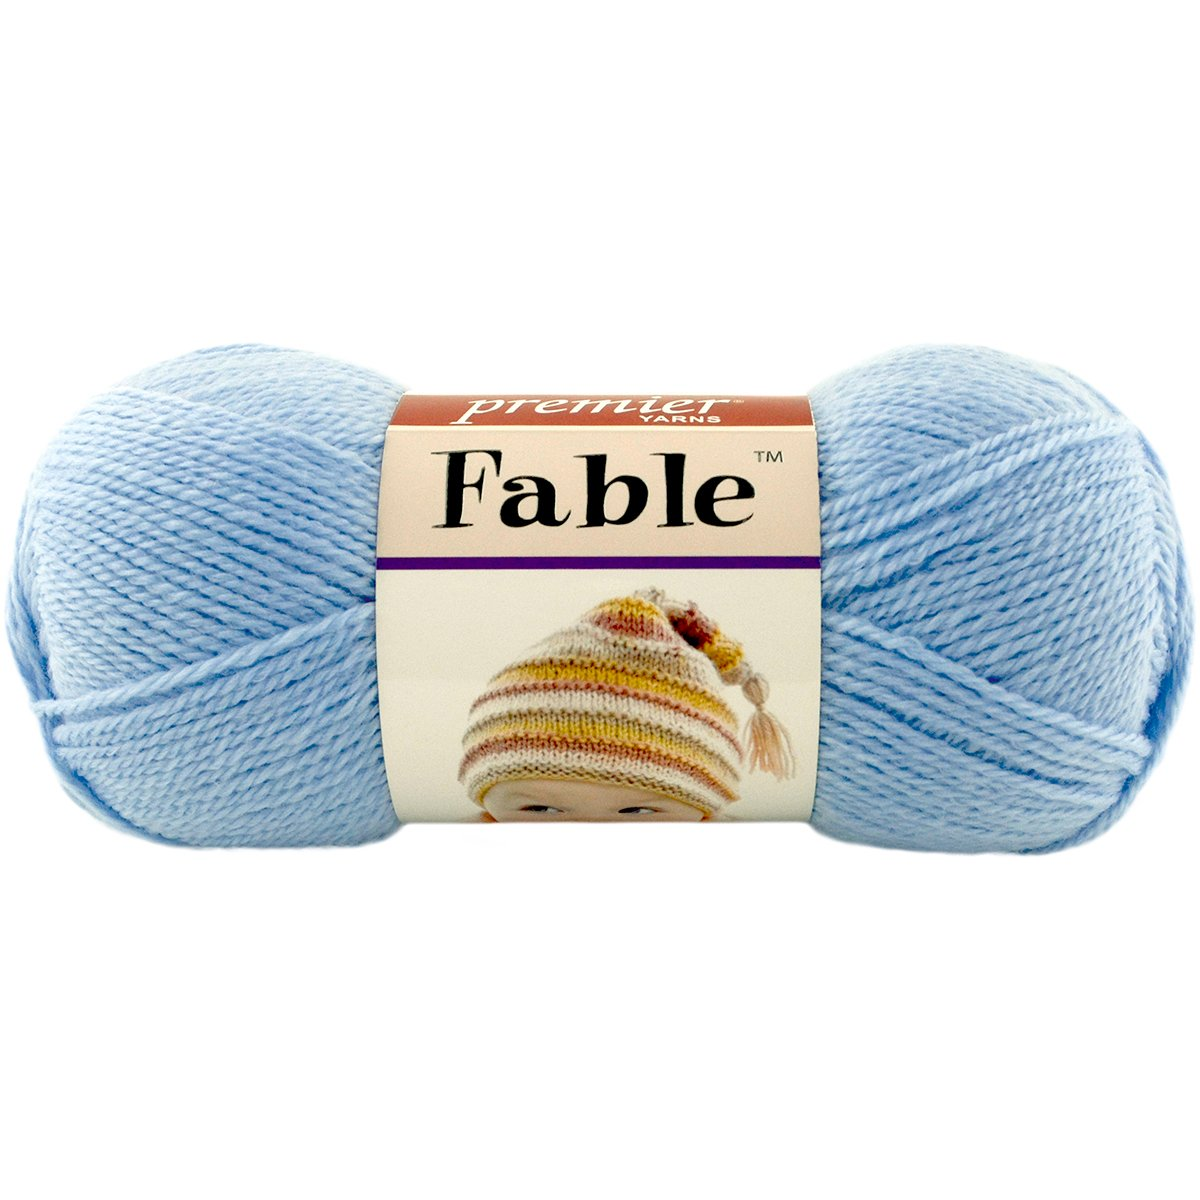 Premier 1030-35 Fable Yarn, Peter and The Wolf, Multicolor